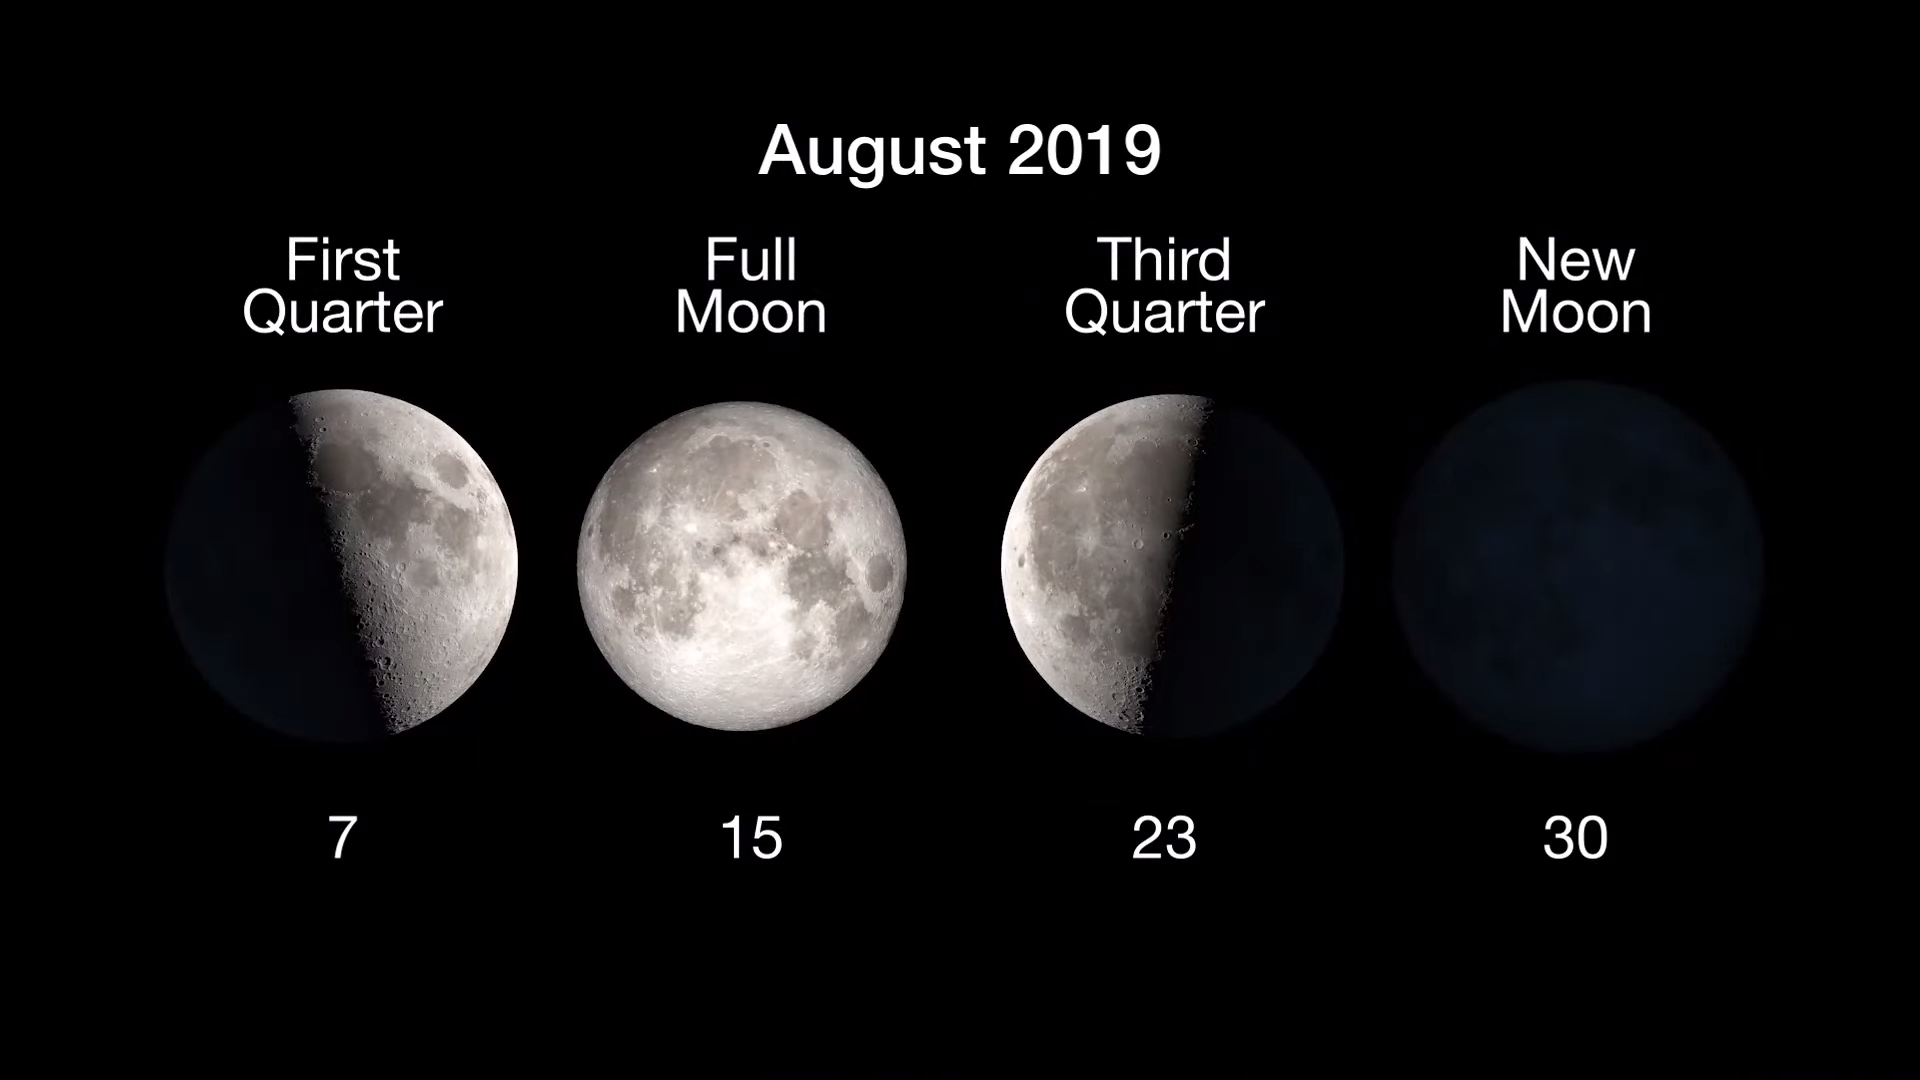 Graphic illustrating Moon phases: 1st Quarter, Aug. 7, Full Moon, Aug. 15. 3rd Quarter Aug. 23 and New Moon, Aug. 30.